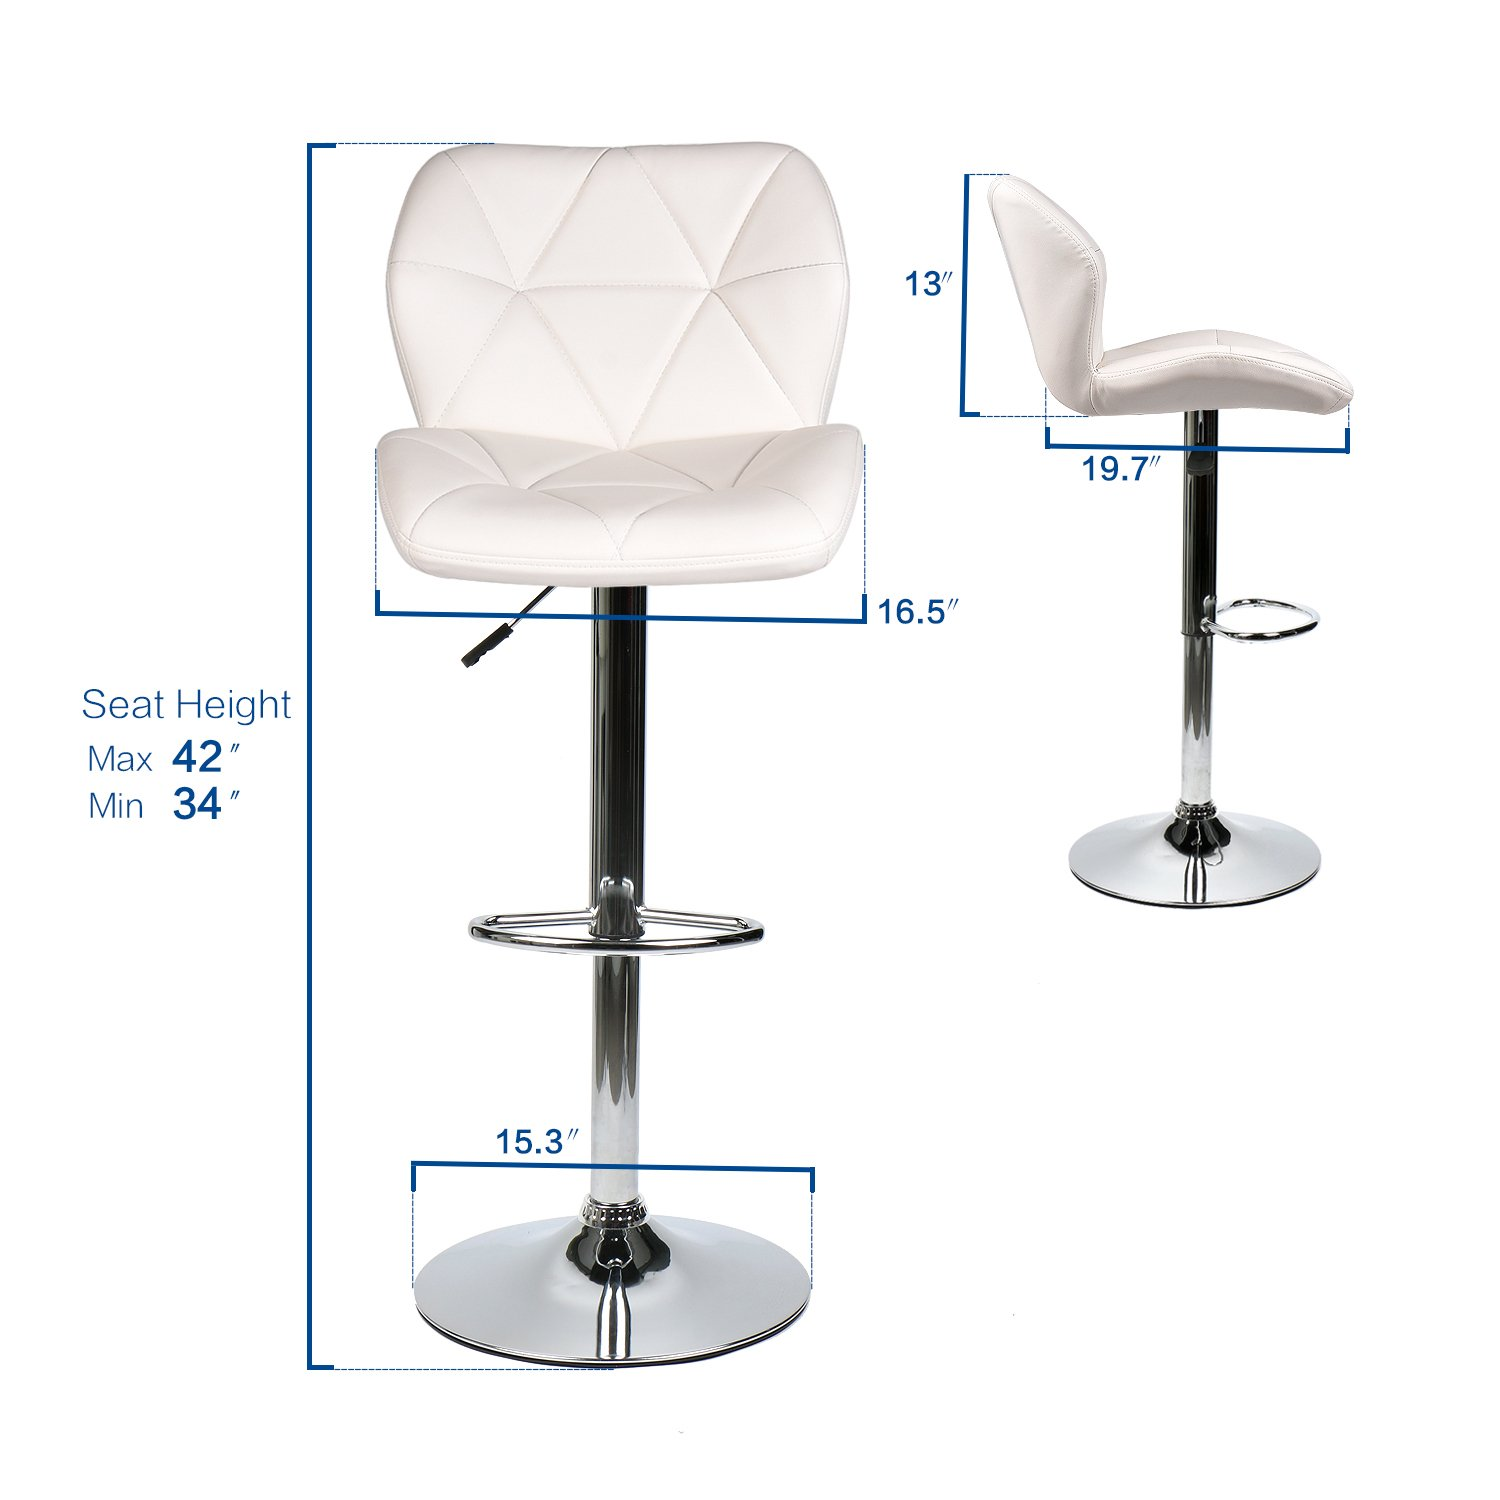 Pub Table Set 3 Piece – 24 inch Round Table with 2 Leatherette Chairs – Height Adjustable White Barstools Marble Stripe Pub Table